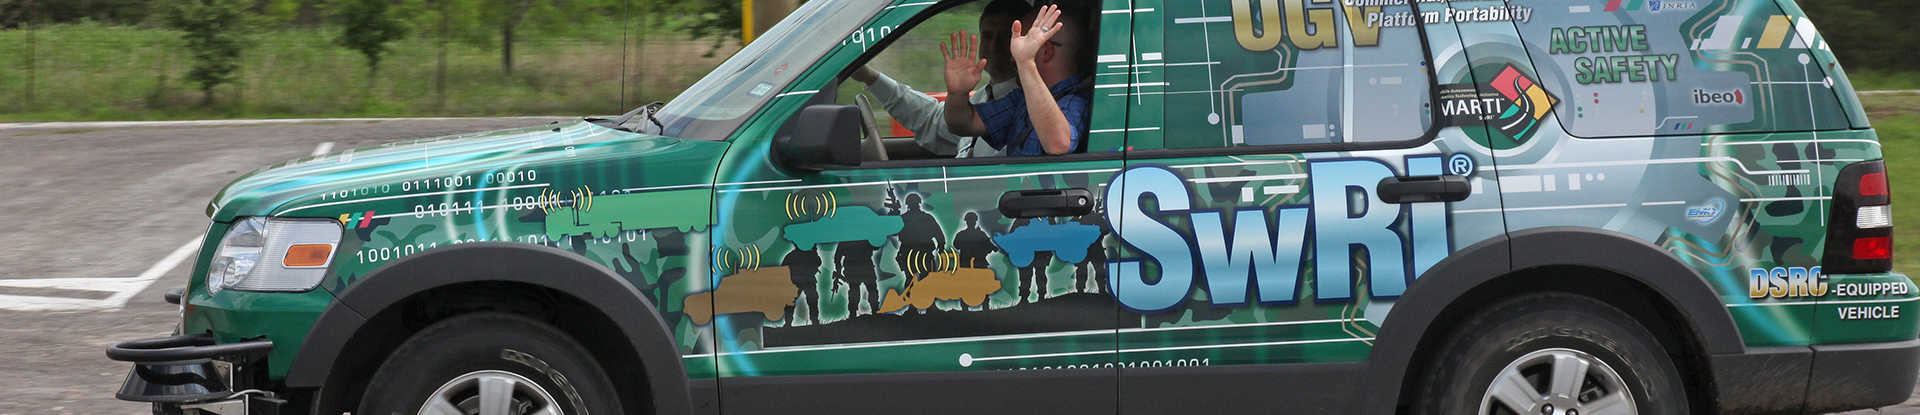 Driver with hand off steering wheel of SUV covered in vinyl graphics